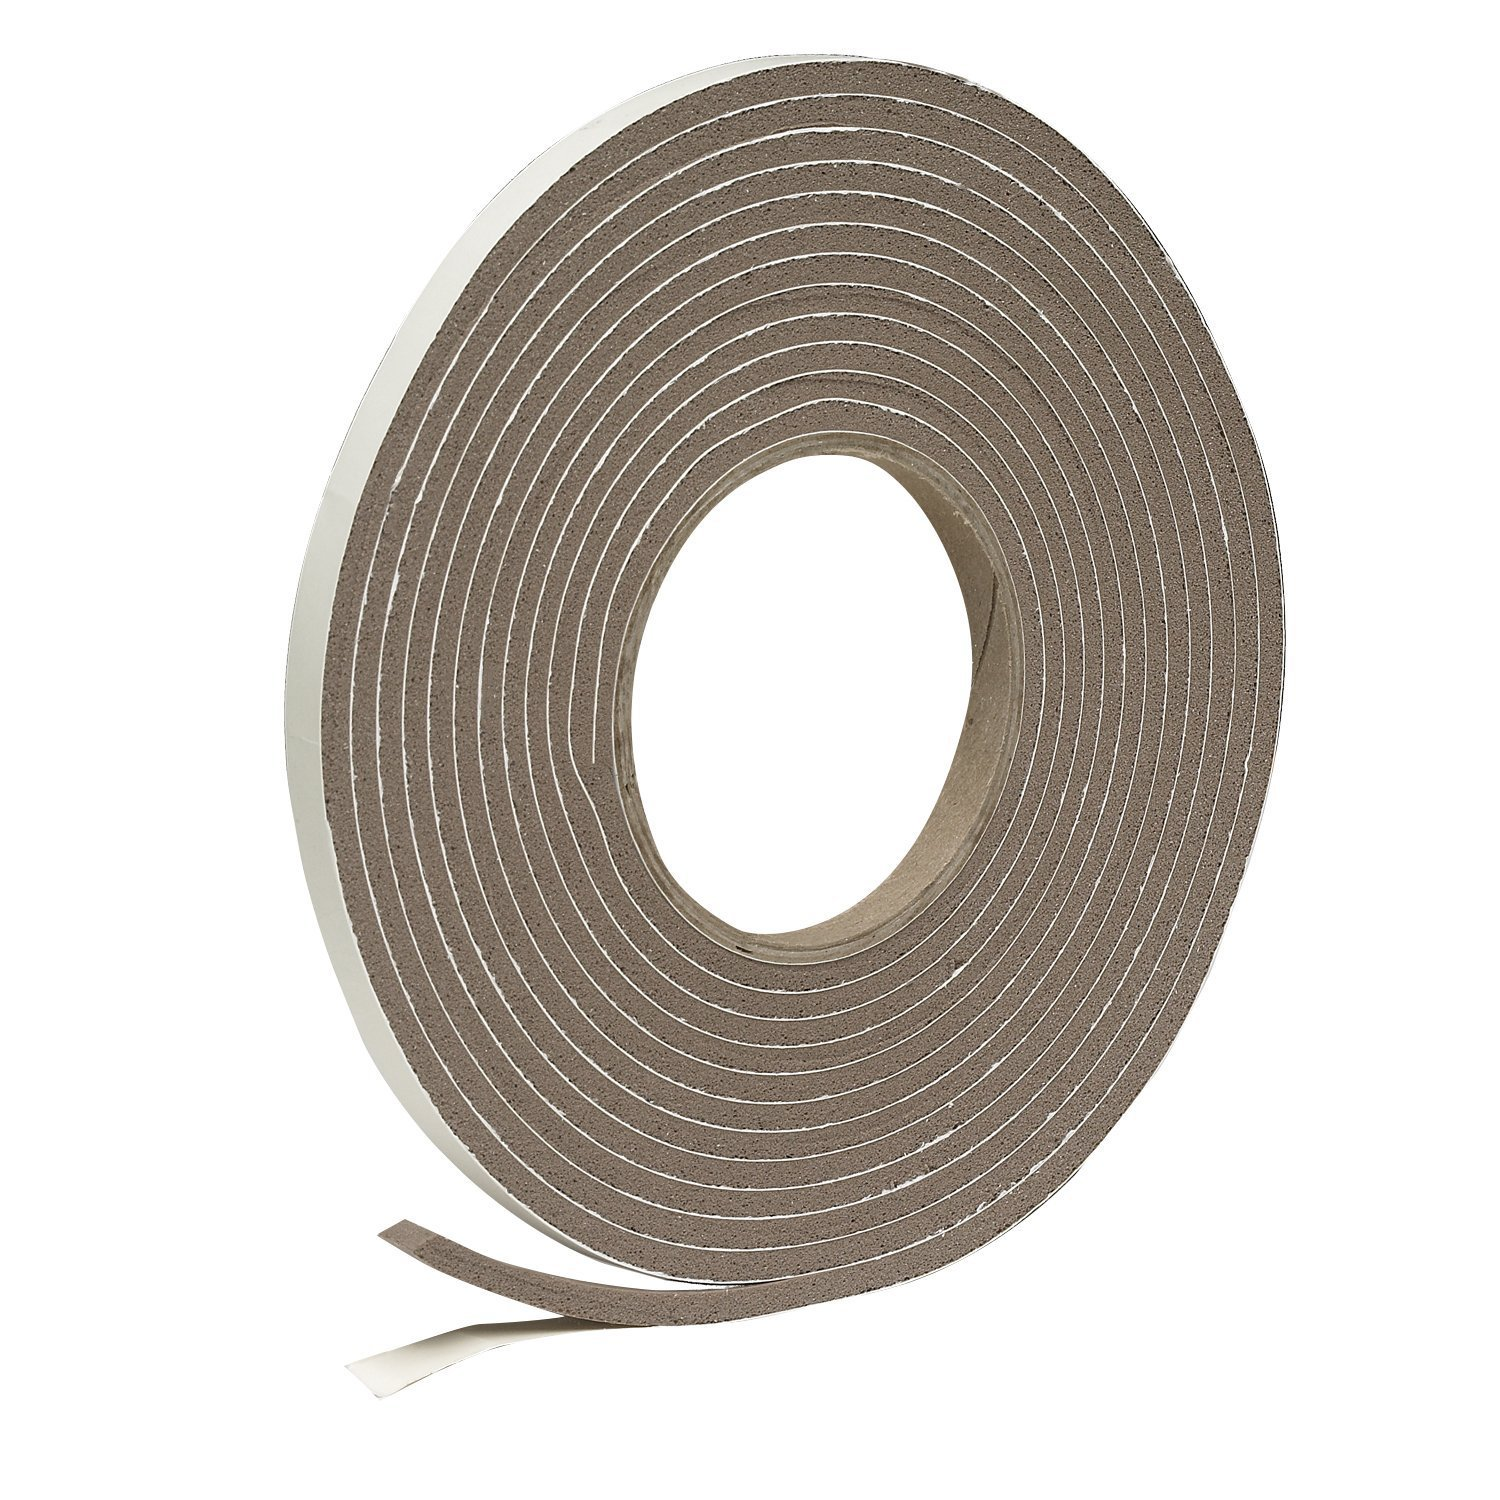 Frost King Vinyl Foam Tape - Closed Cell - Moderate Compression, 3/8'' W, 3/16'' Thick, 17' L, Brown